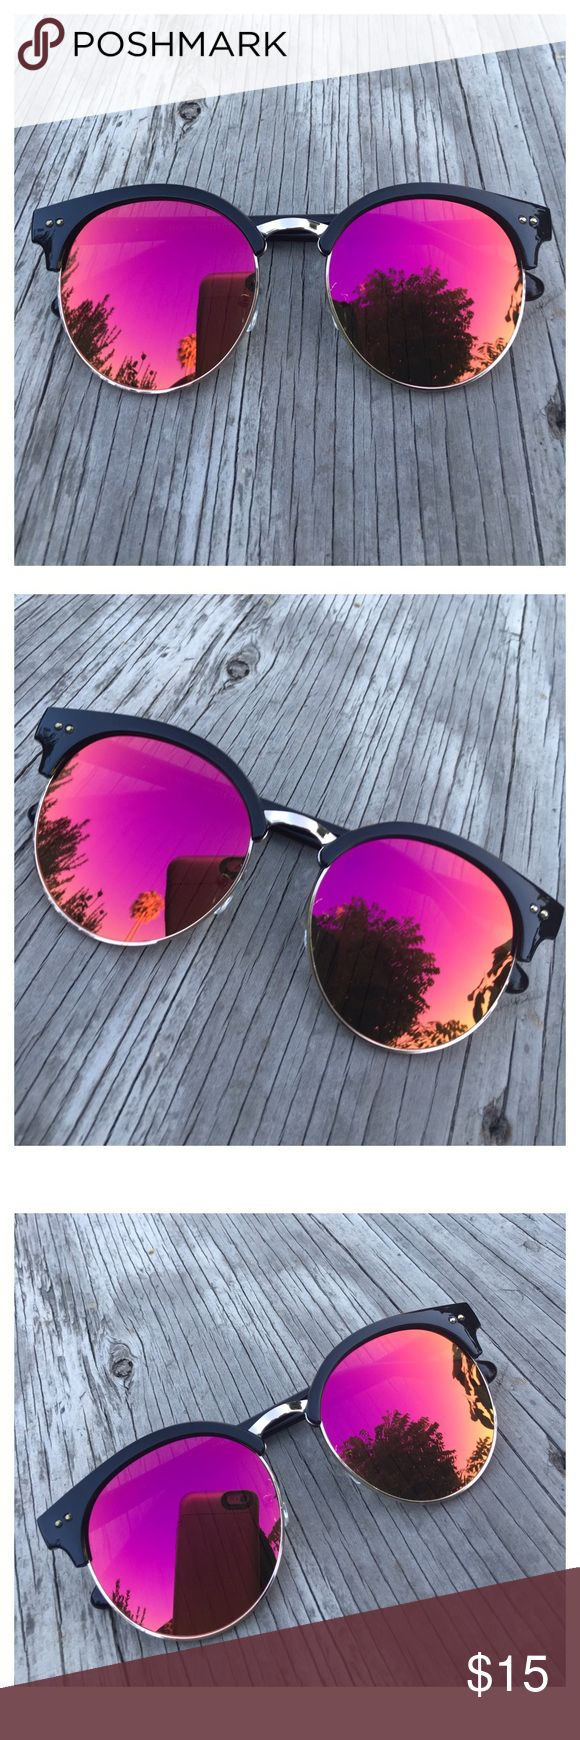 Red Aviator Sunglasses, Mirrored Sunglasses This listing is for a pair of blue Mirrored aviator sunglasses. Reflective sunglasses. Trending sunglasses. UV Protection. Brand new! Accessories Sunglasses